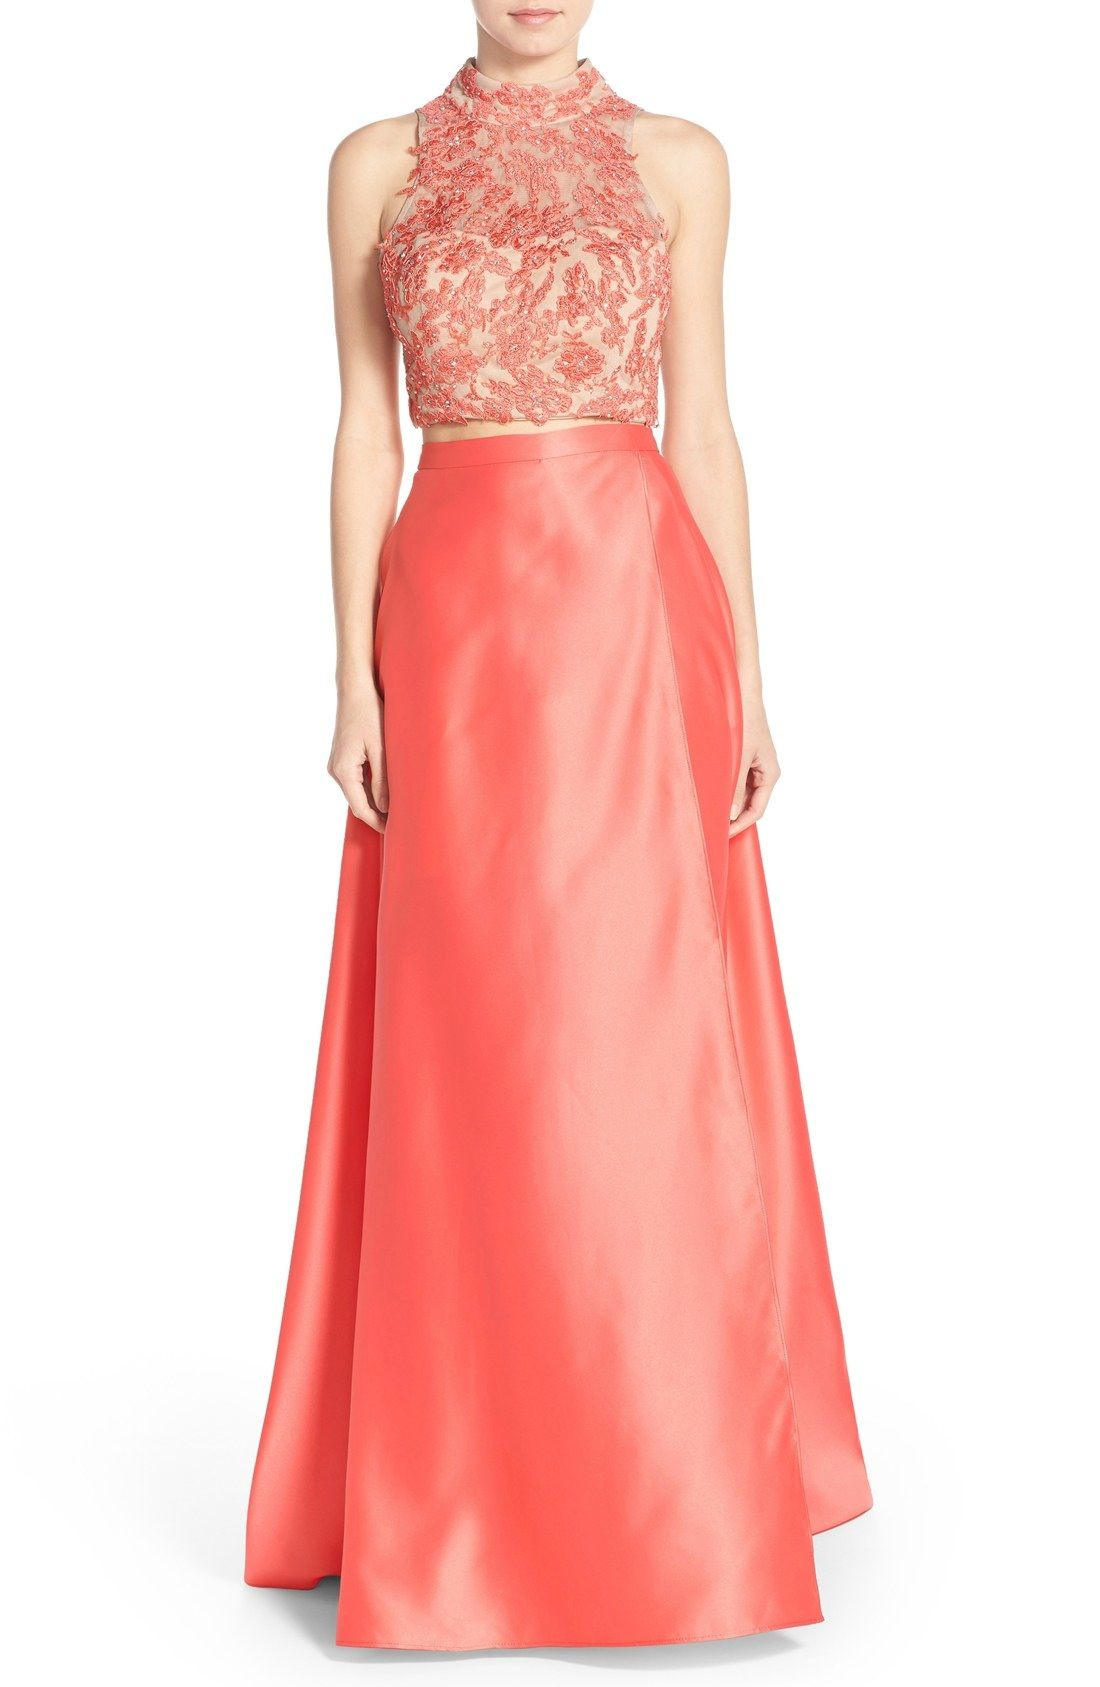 Xscape embellished satin twopiece ballgown available at nordstrom